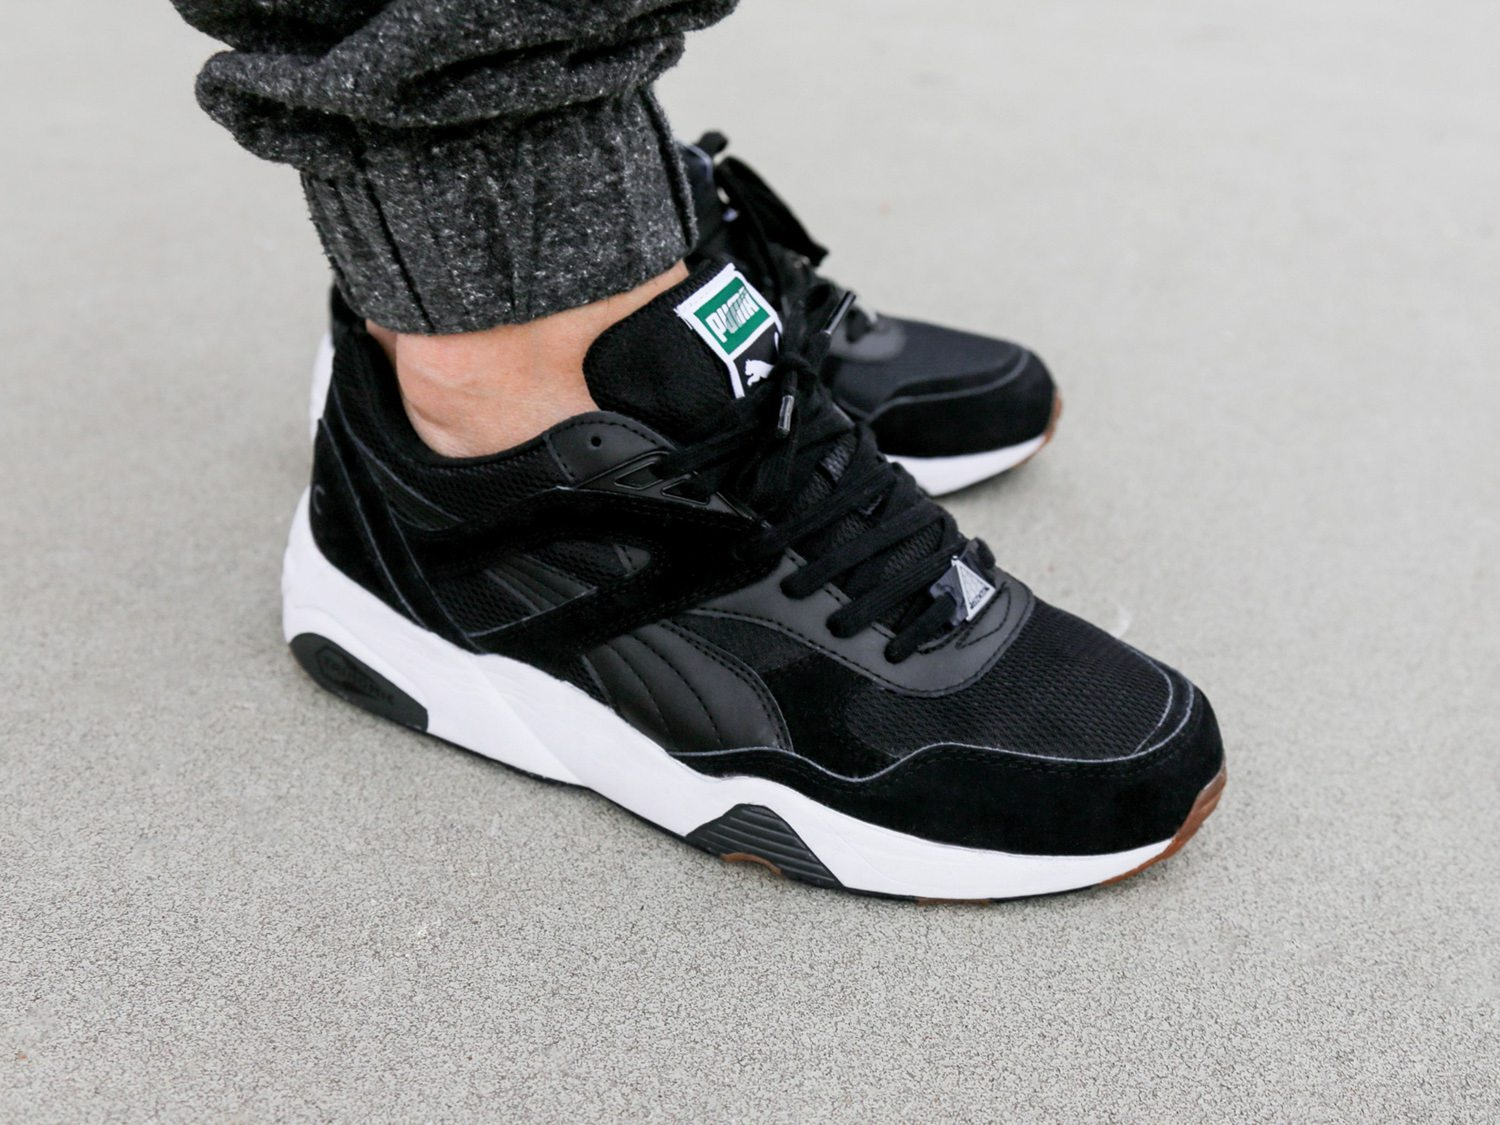 PUMA-Trinomic-Spring-Summer-2015-Black-&-White-Collection-22